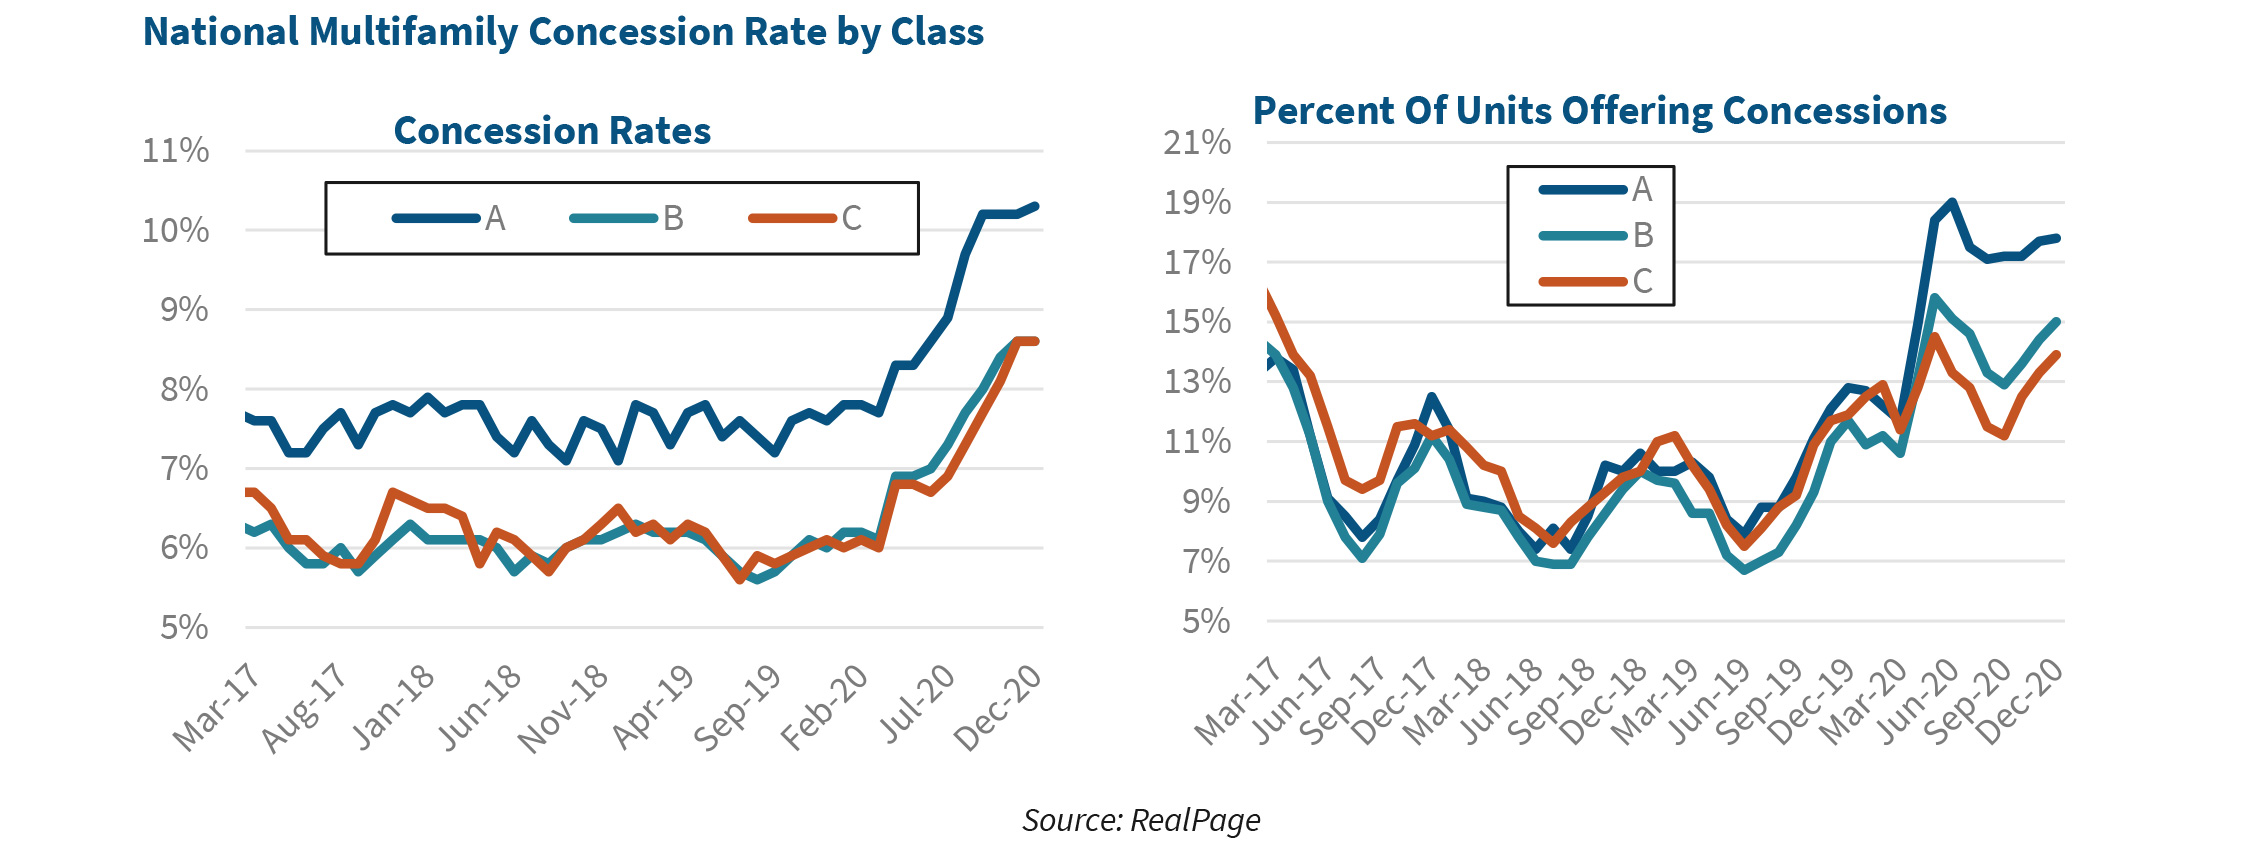 National Multifamily Concession Rate by Class